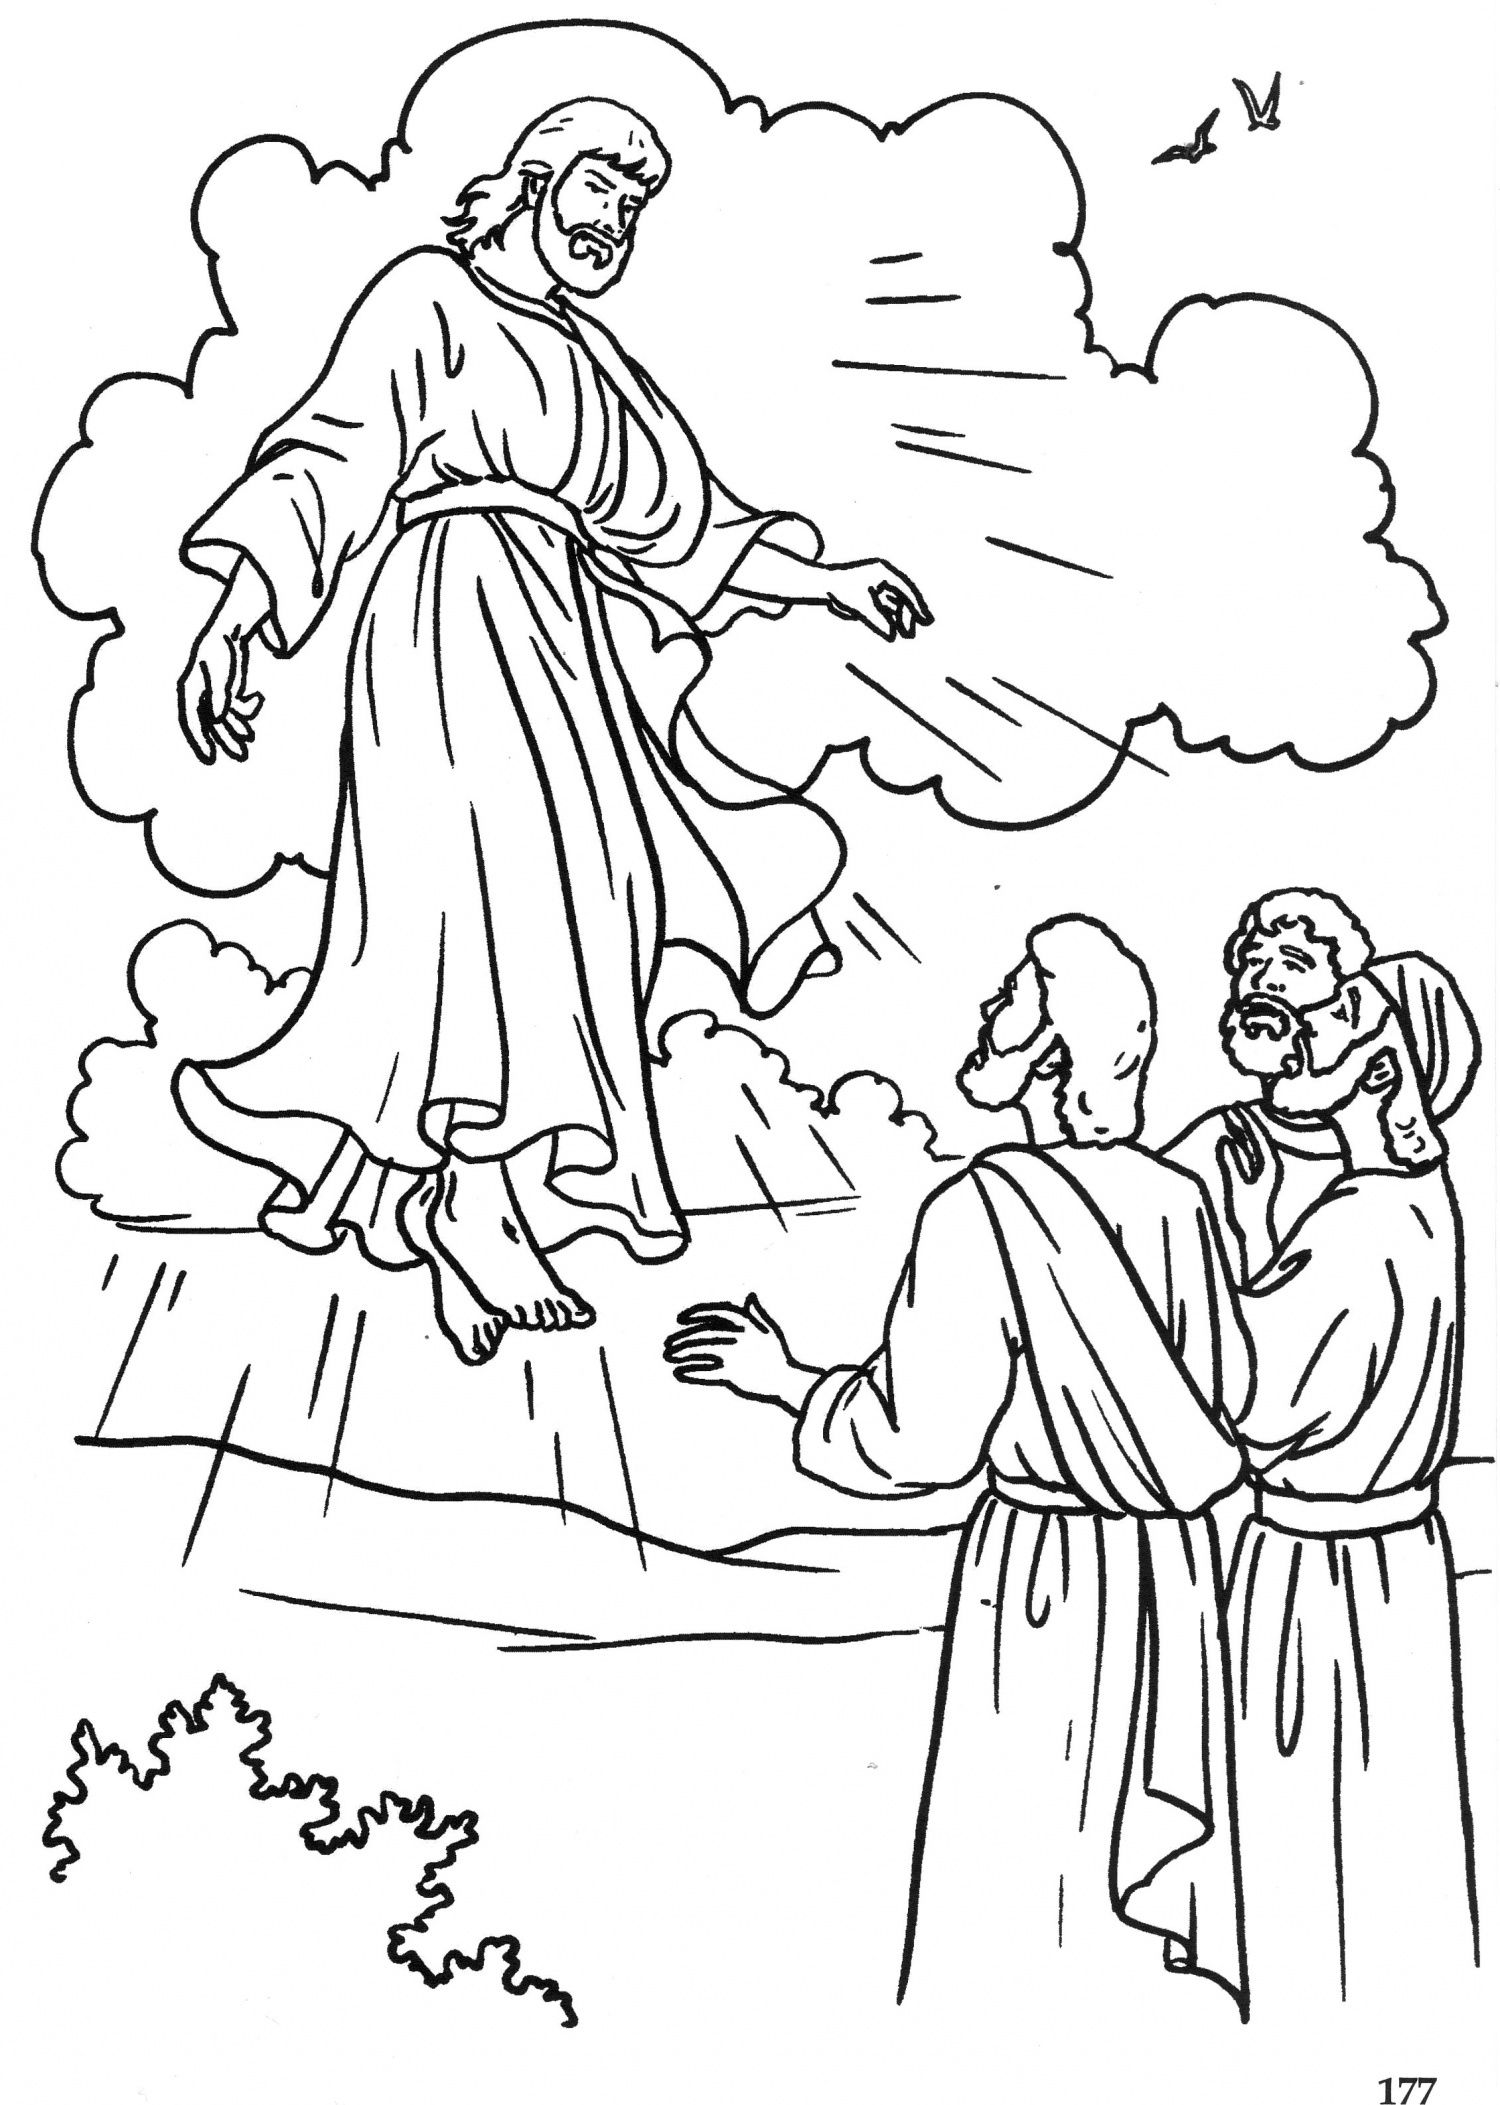 free catholic bible coloring pages - photo#8